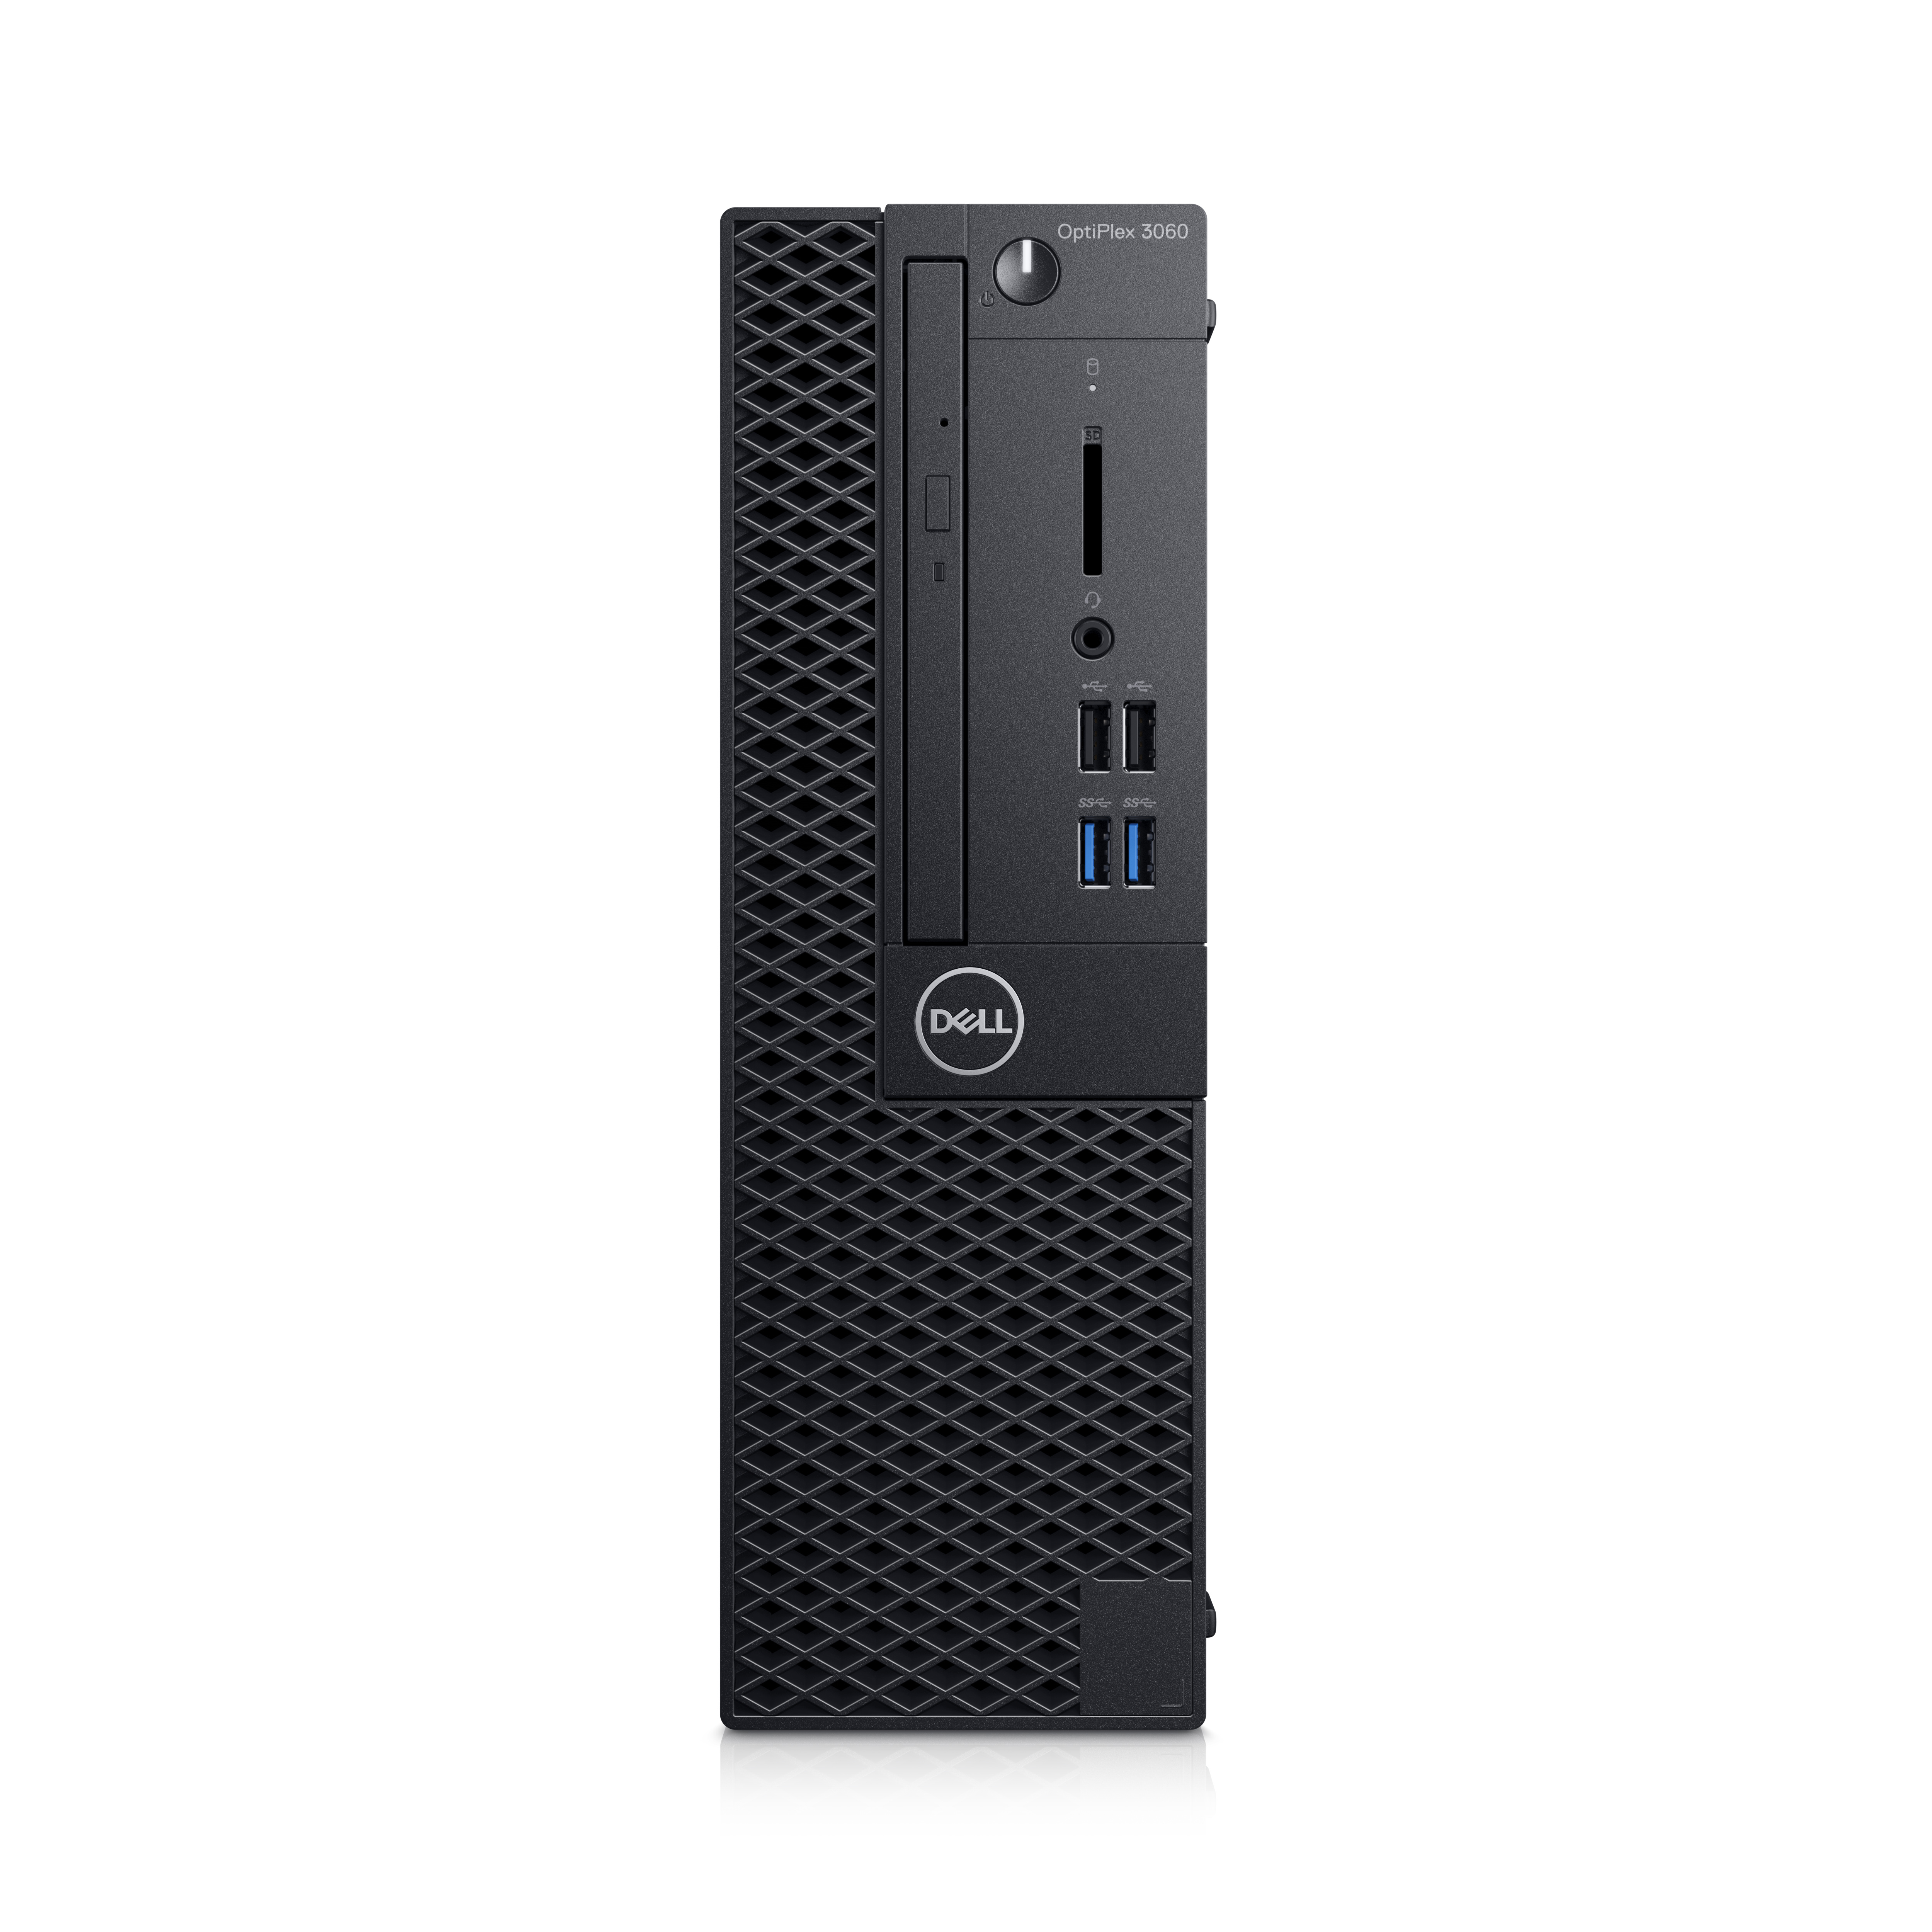 Dell OptiPlex 3060 black